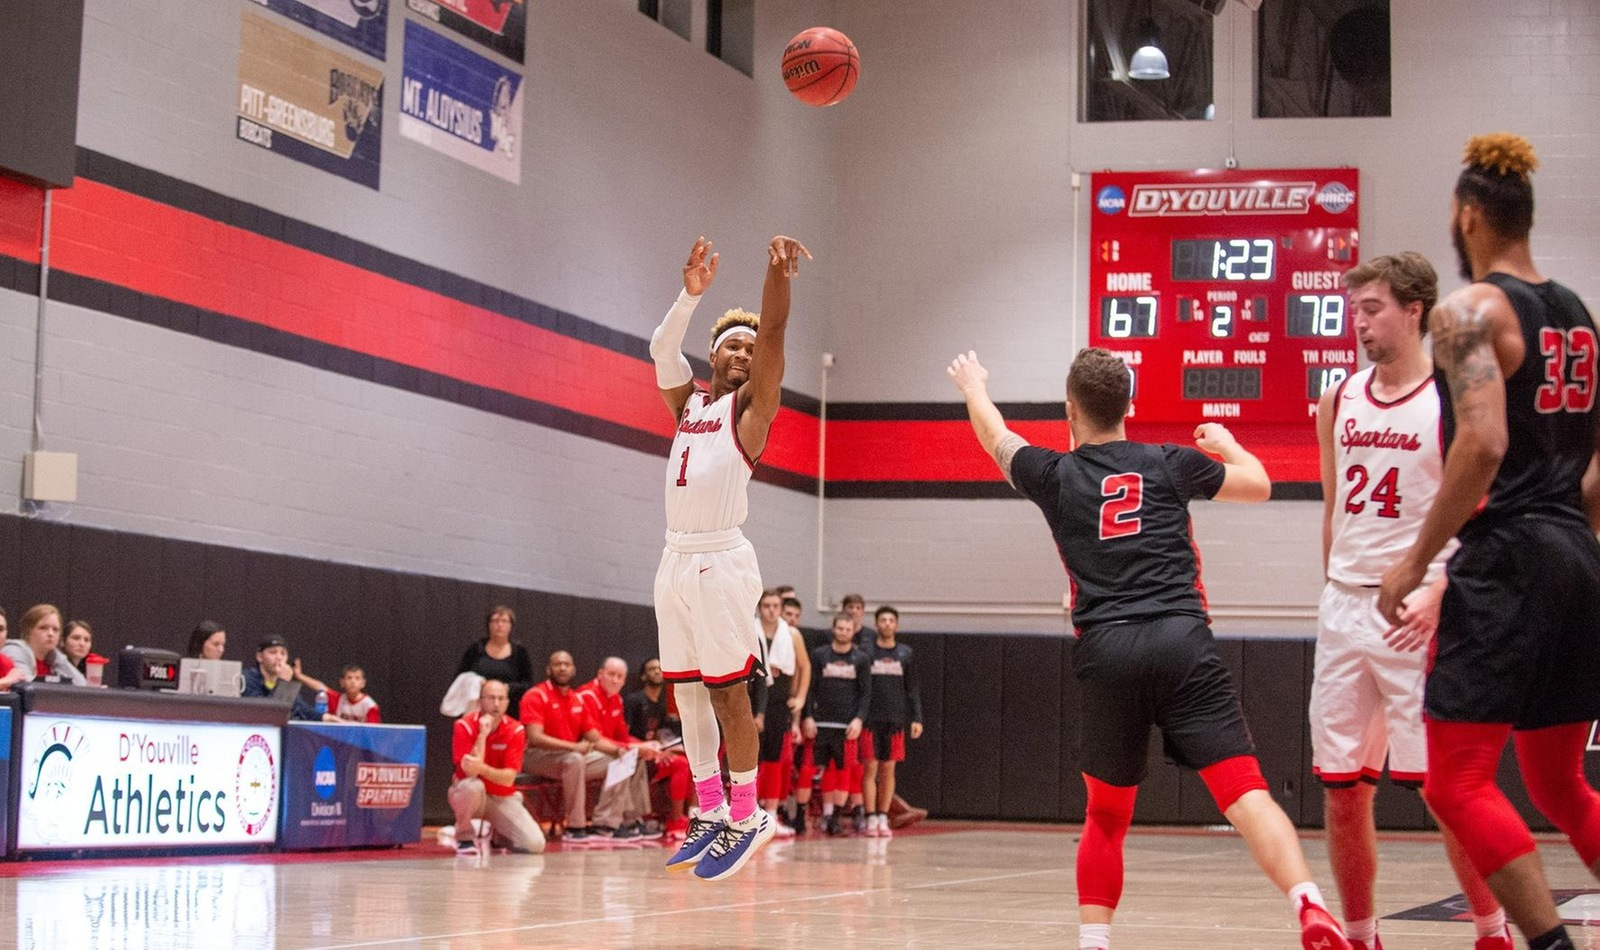 Lions Get Revenge as Men's Basketball Falls to Behrend